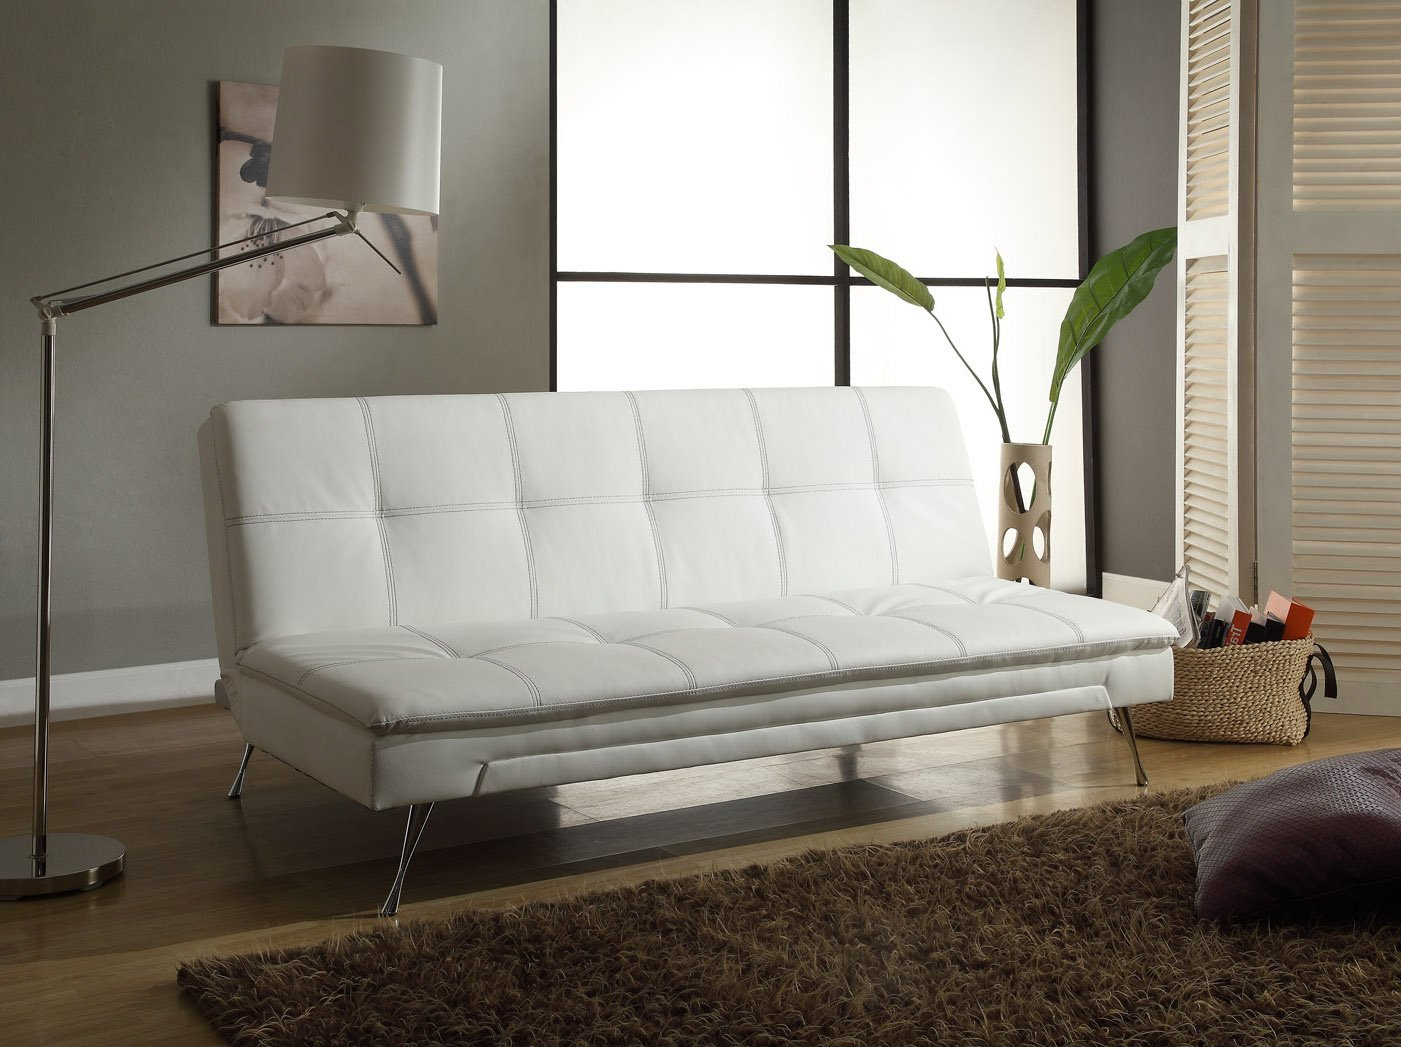 Buy cheap sofa cheap sectional sofa for Affordable couches for sale